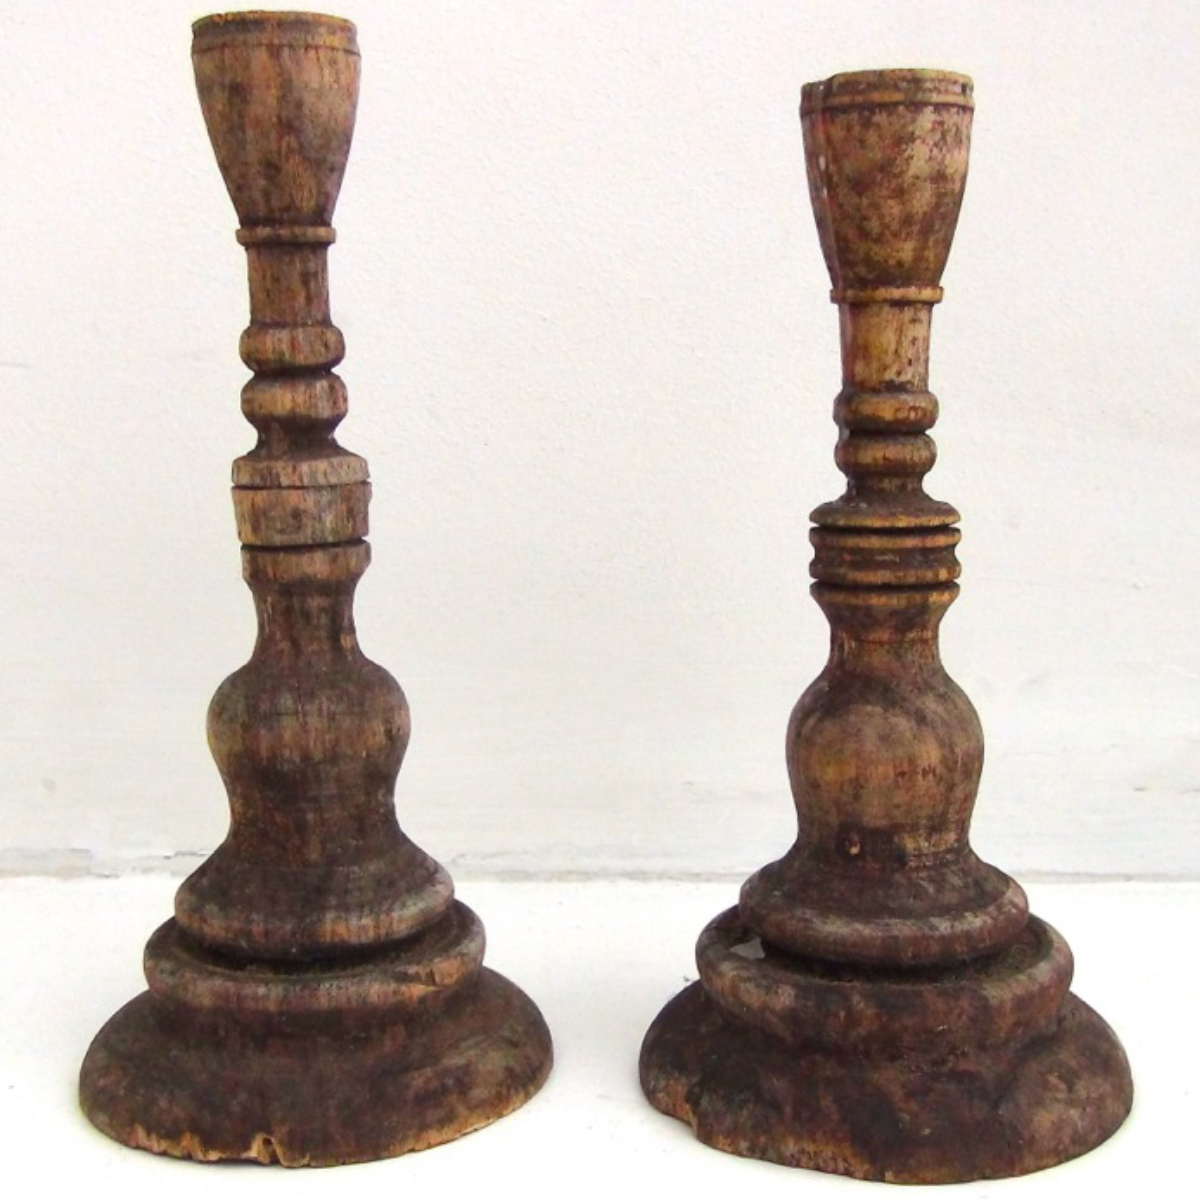 Swedish candlesticks, , circa. 1720. - € 800